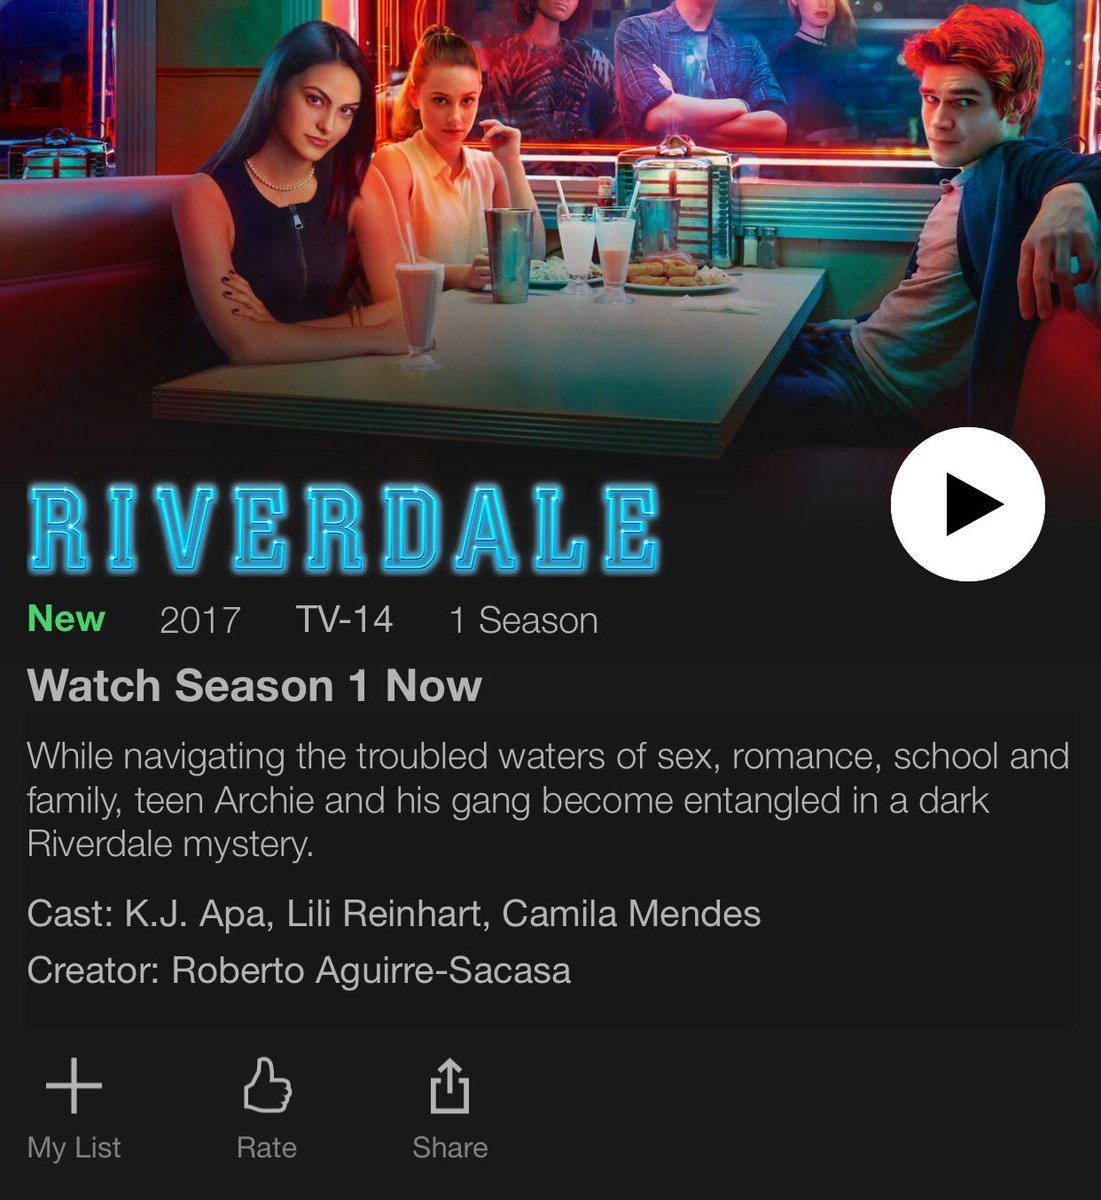 #Riverdale season 1 is officially on Netflix US! RT if you&#39;re watching this weekend @ArchieComics @CW_Riverdale   http:// netflixlife.com/2017/05/19/riv erdale-season-1-now-on-netflix-us/ &nbsp; … <br>http://pic.twitter.com/mCi11VswiR